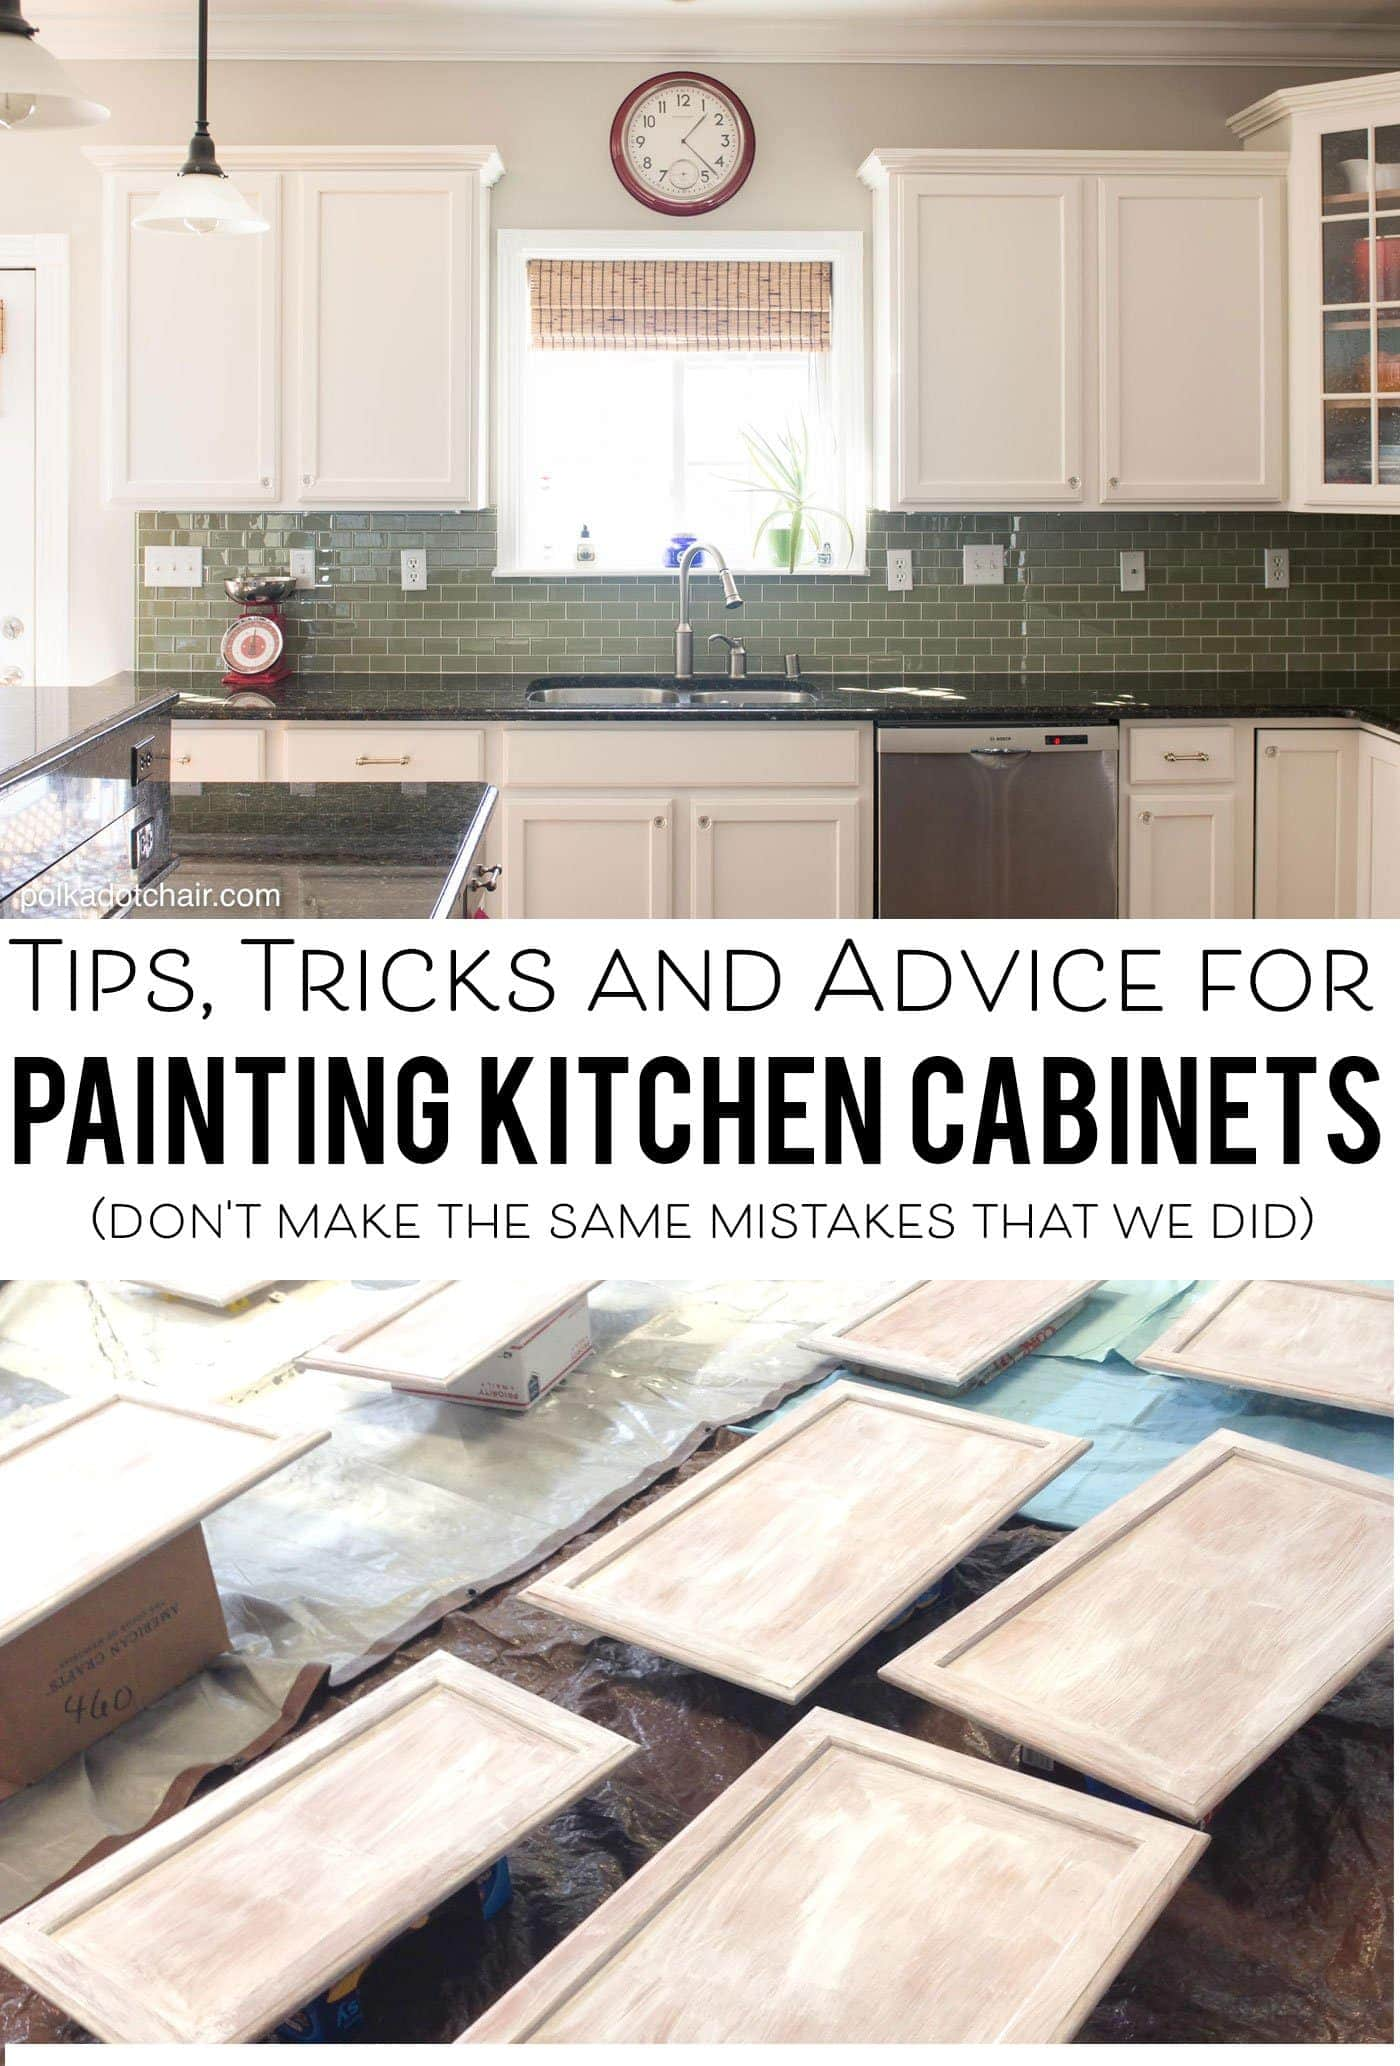 Perfect Tips And Tricks And What NOT To Do When Painting Your Kitchen Cabinets